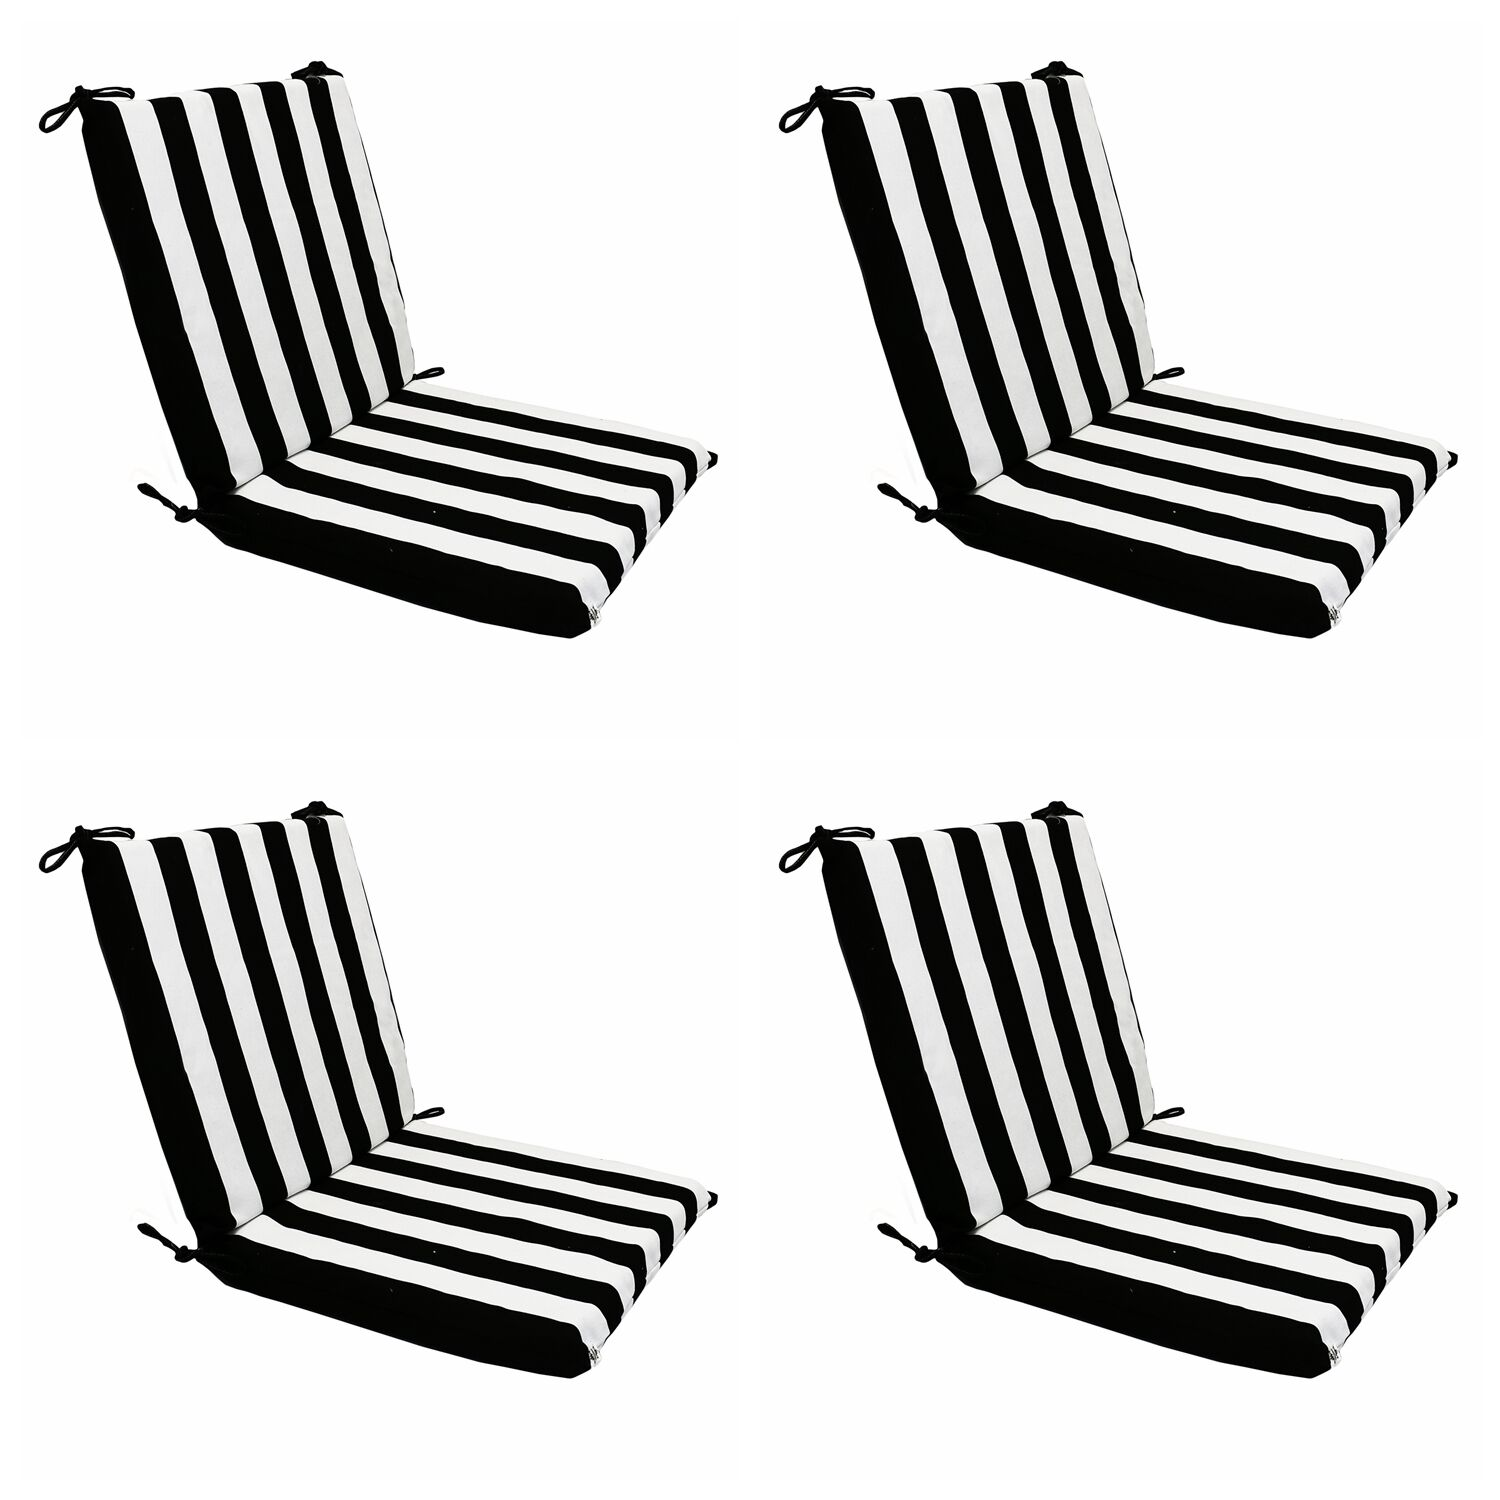 Black stripes patio lounge chaise dining chair foam for Black and white striped chaise lounge cushions